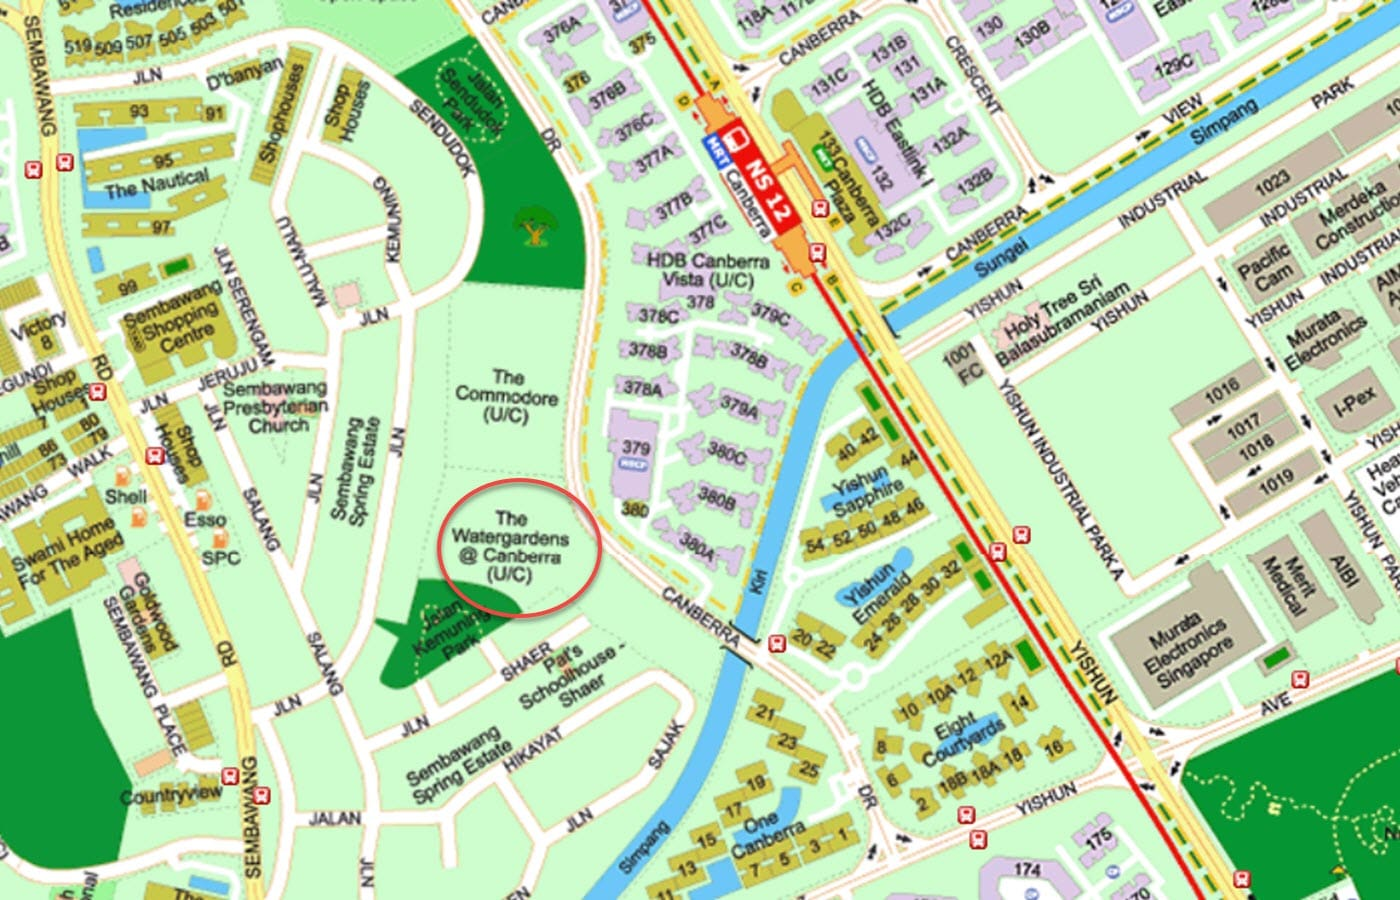 The Watergardens At Canberra Condo Location - Street Directory Map